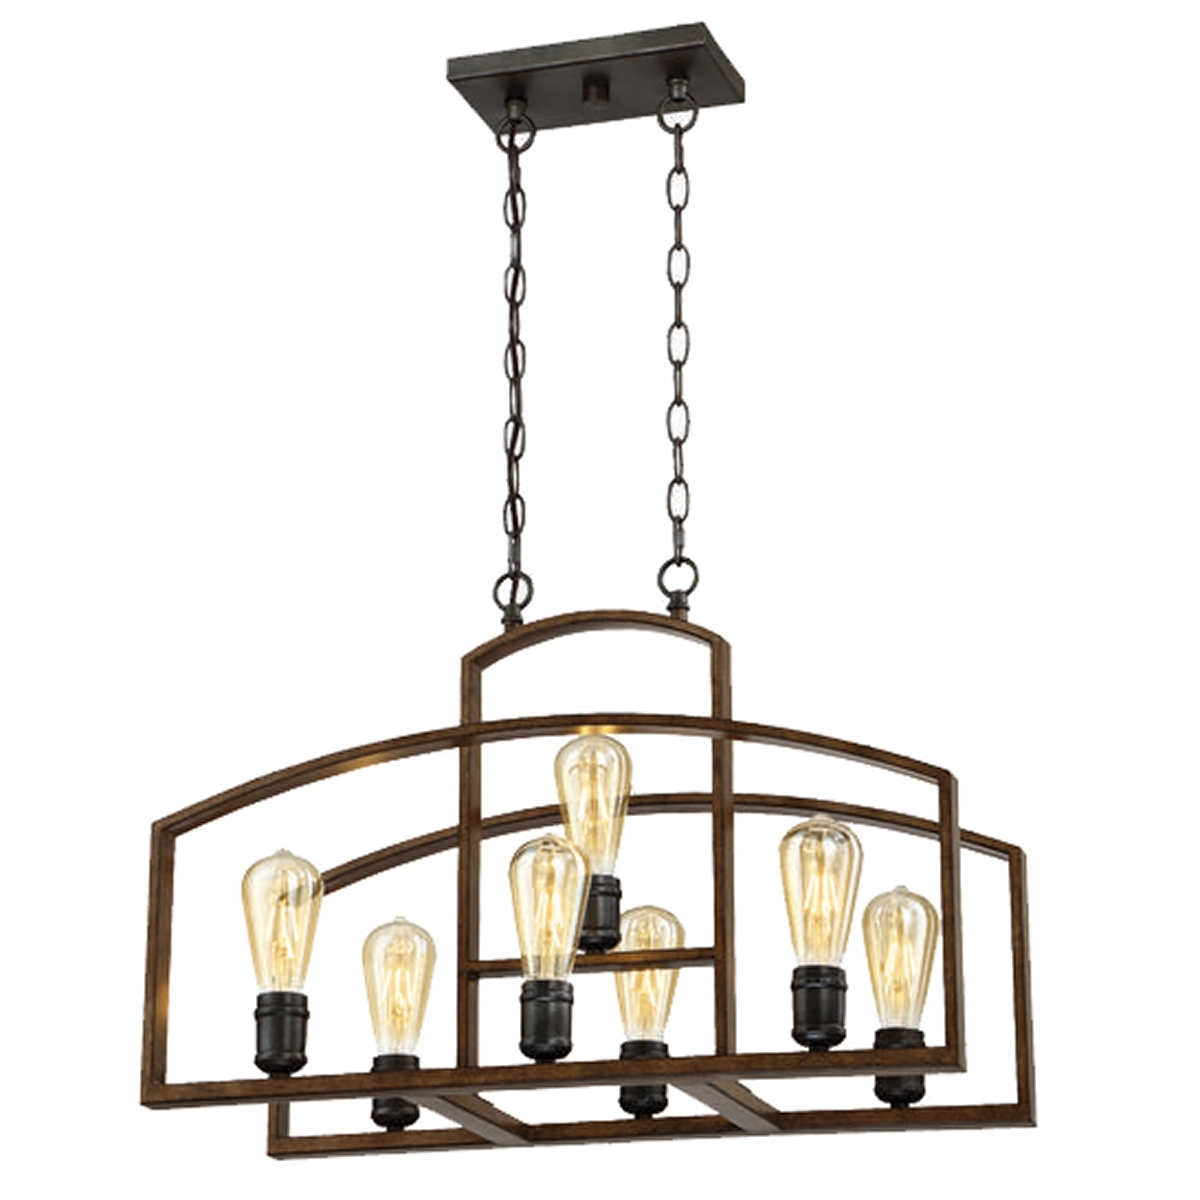 Costco Chandeliers Pertaining To Most Current Best Perfect Chandeliers At Costco 5 # (View 11 of 20)